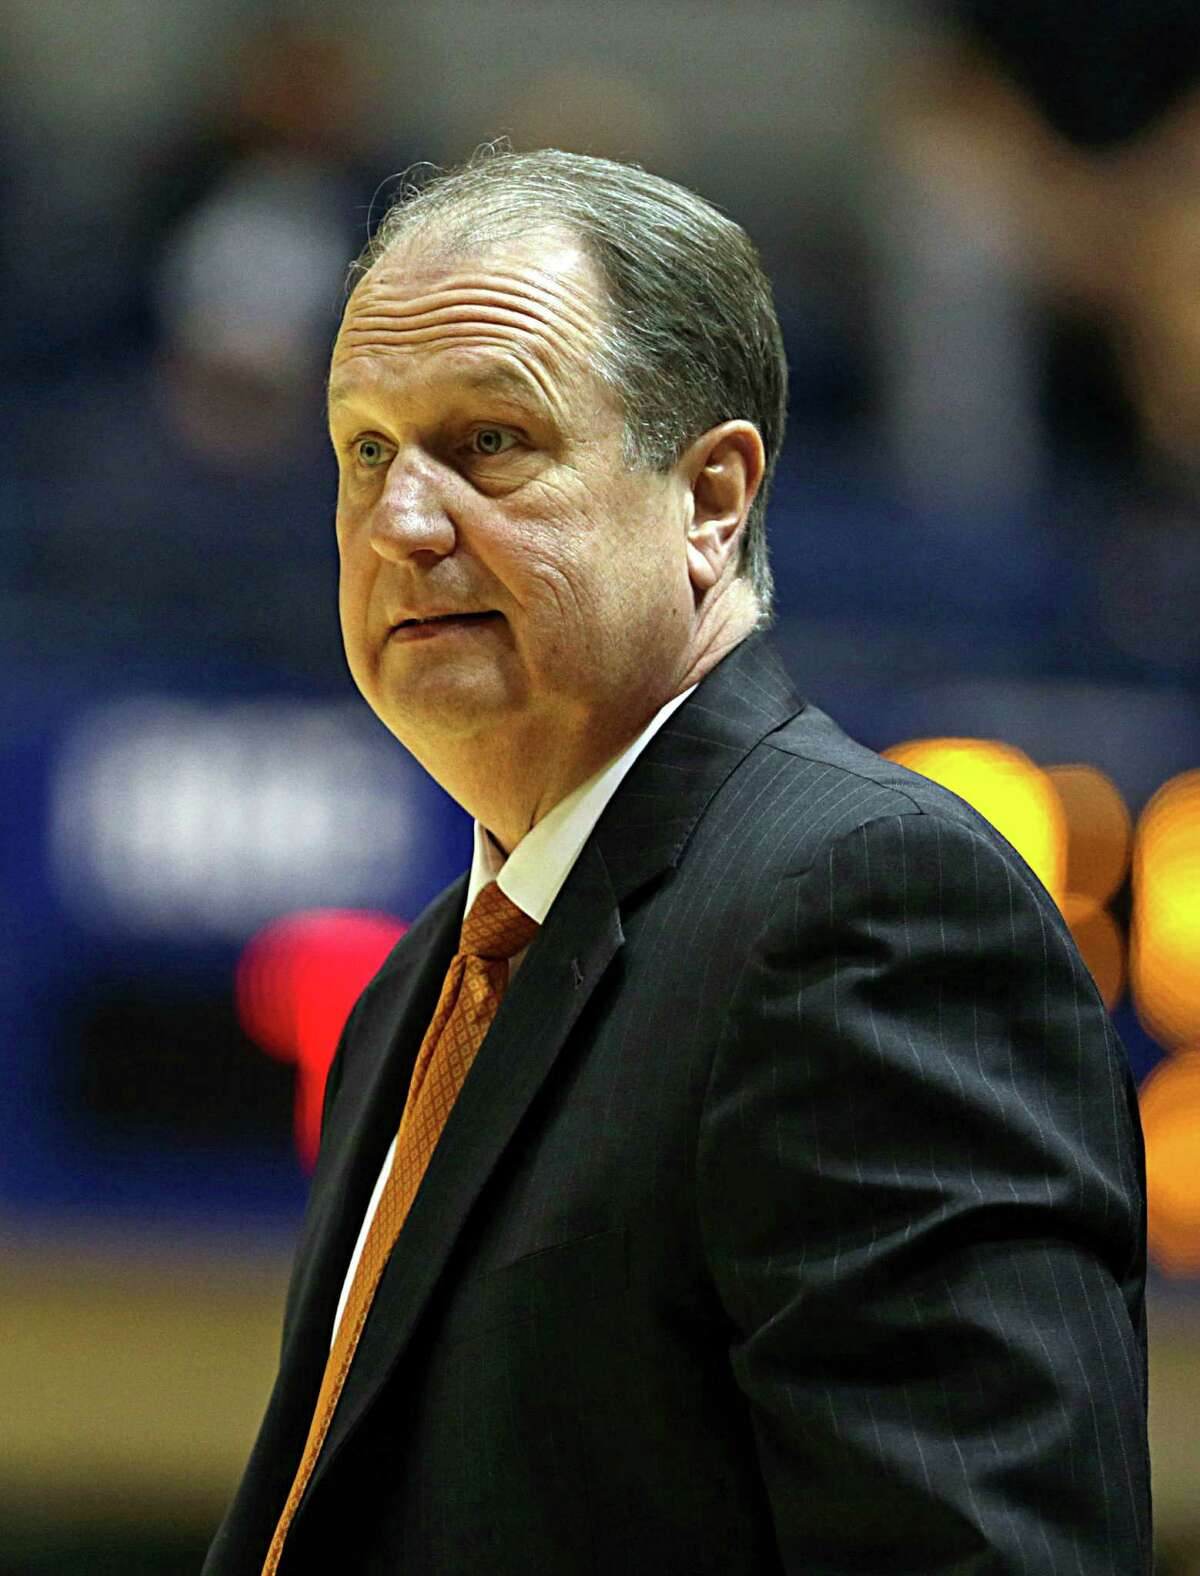 Houston Baptist head coach Ron Cottrell during the first half of men's college basketball game action, in Houston.